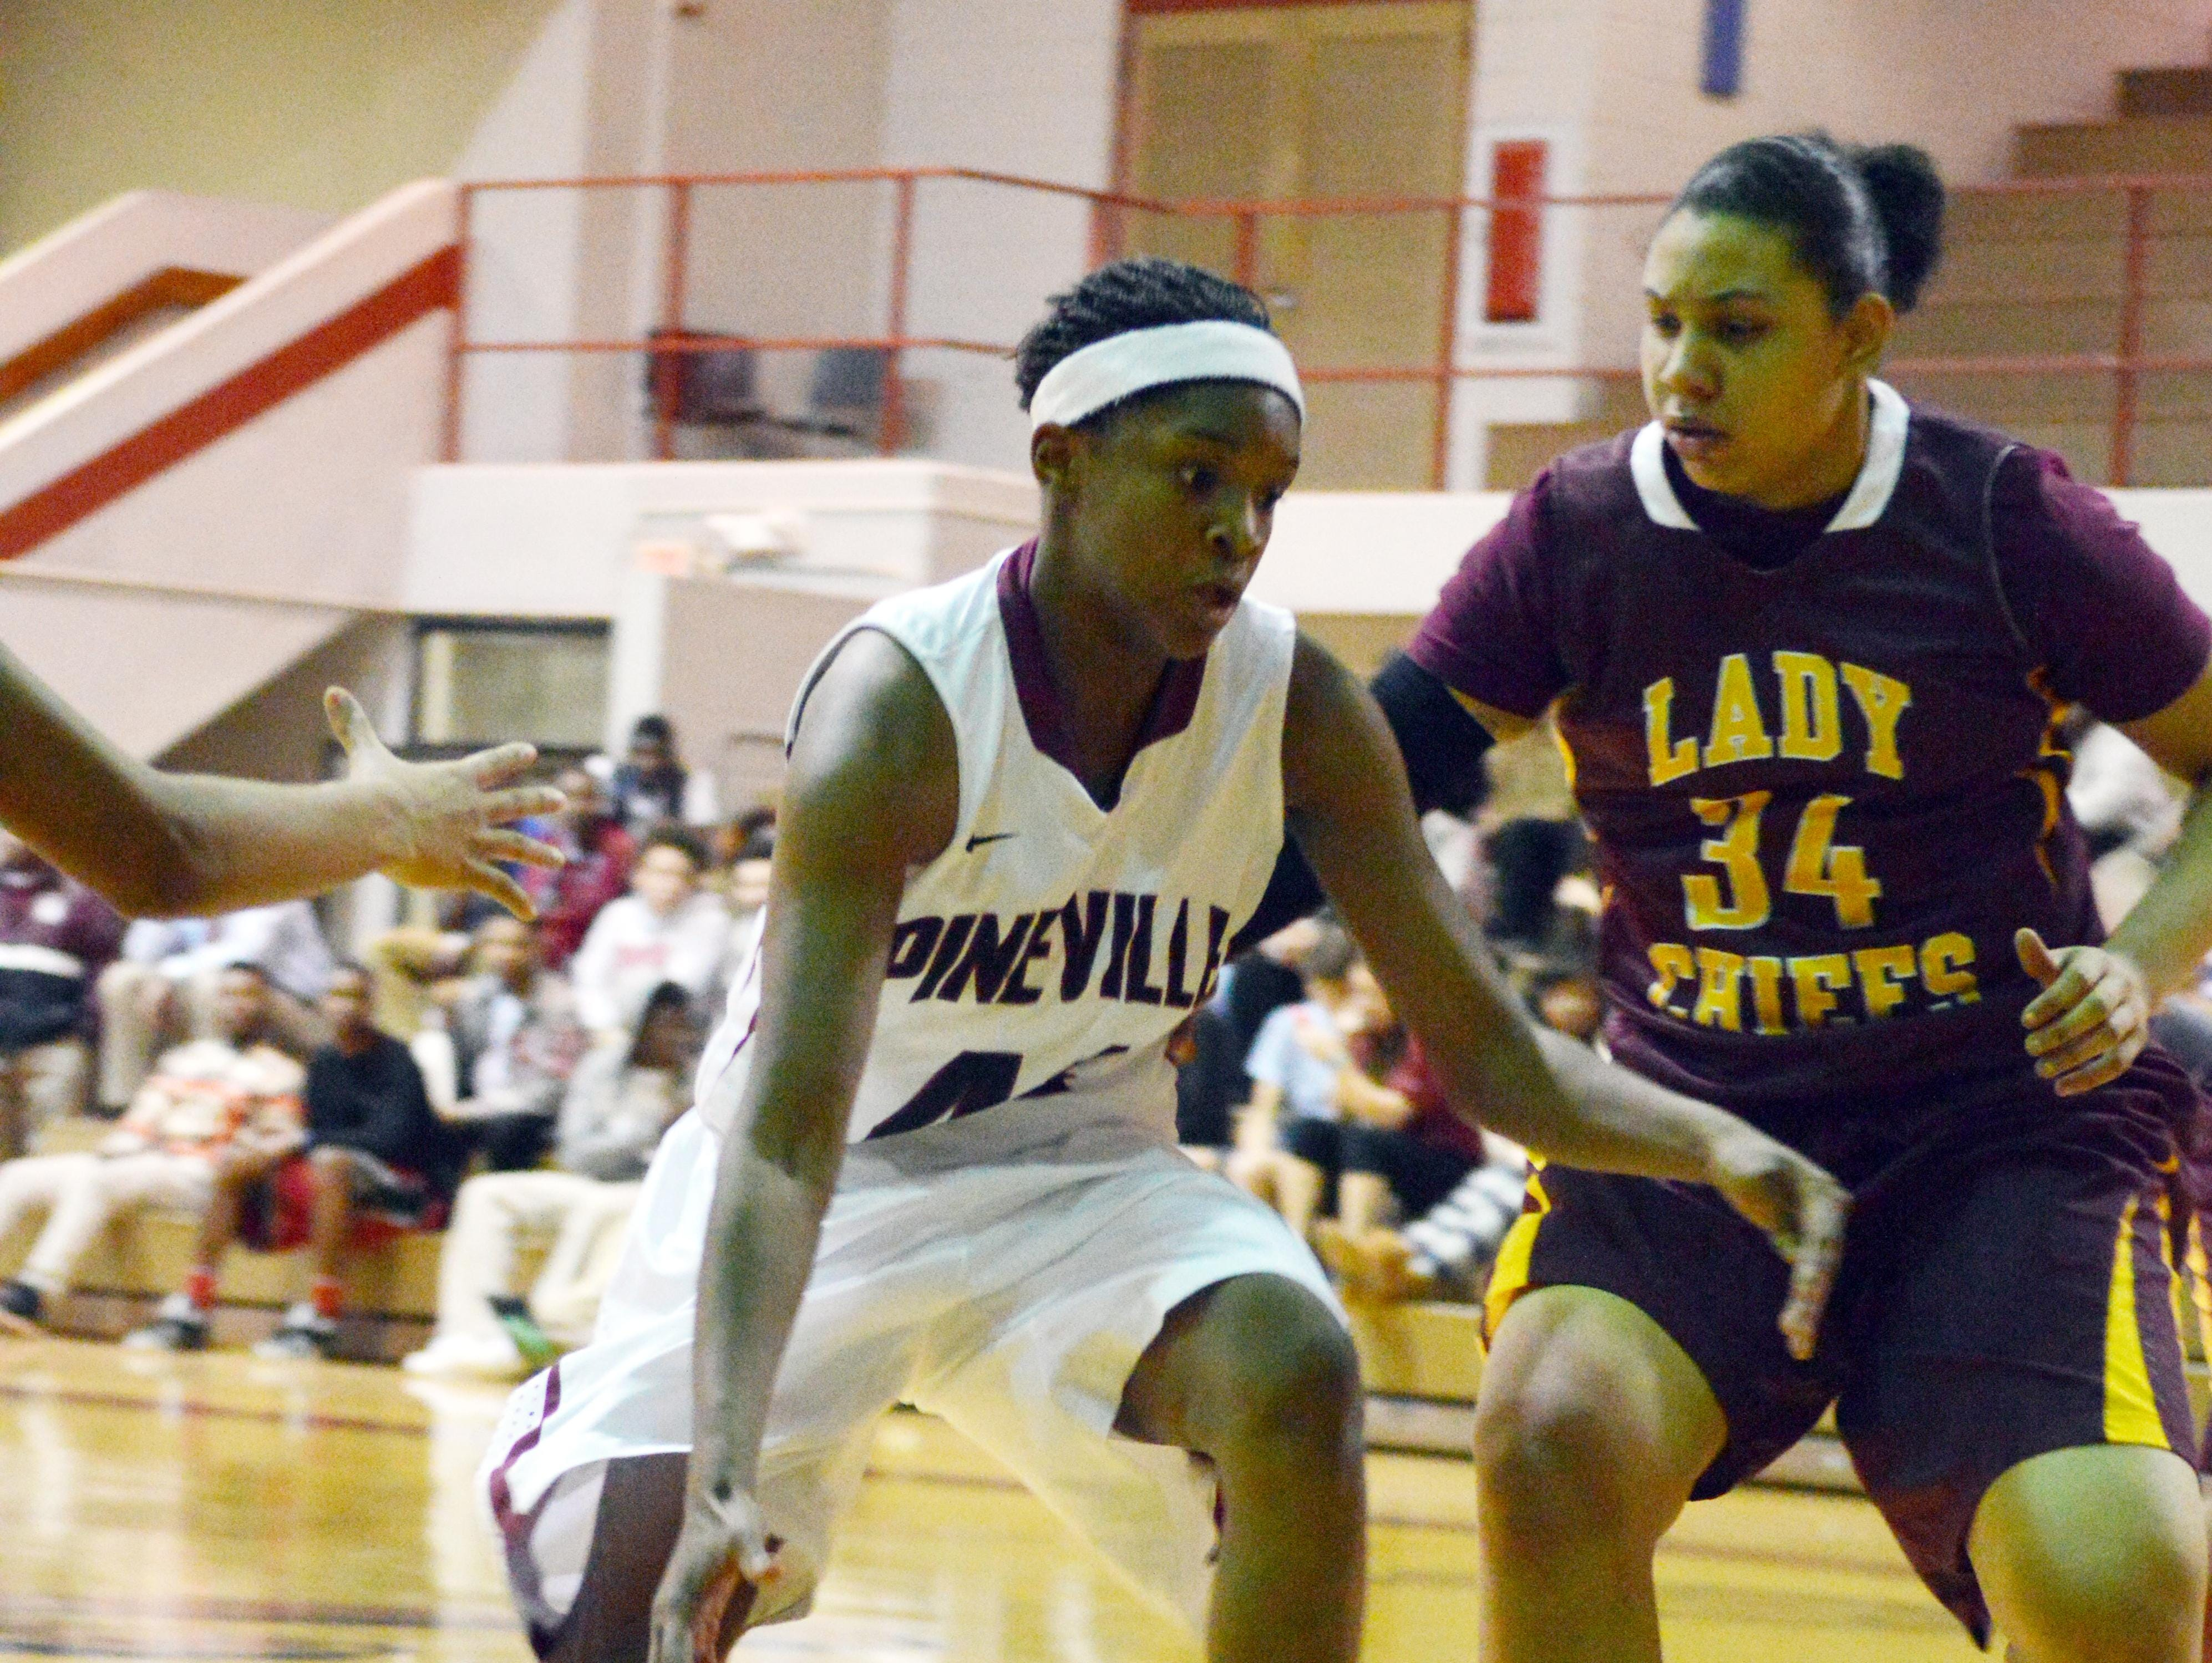 Pineville senior shooting guard Danyale Bayonne (42) has given an oral commitment to play college basketball at UL Lafayette. Bayonne averaged 14 points and six rebounds last season, earning Class 5A all-state honorable mention and making the All-Cenla first team for the second straight season.